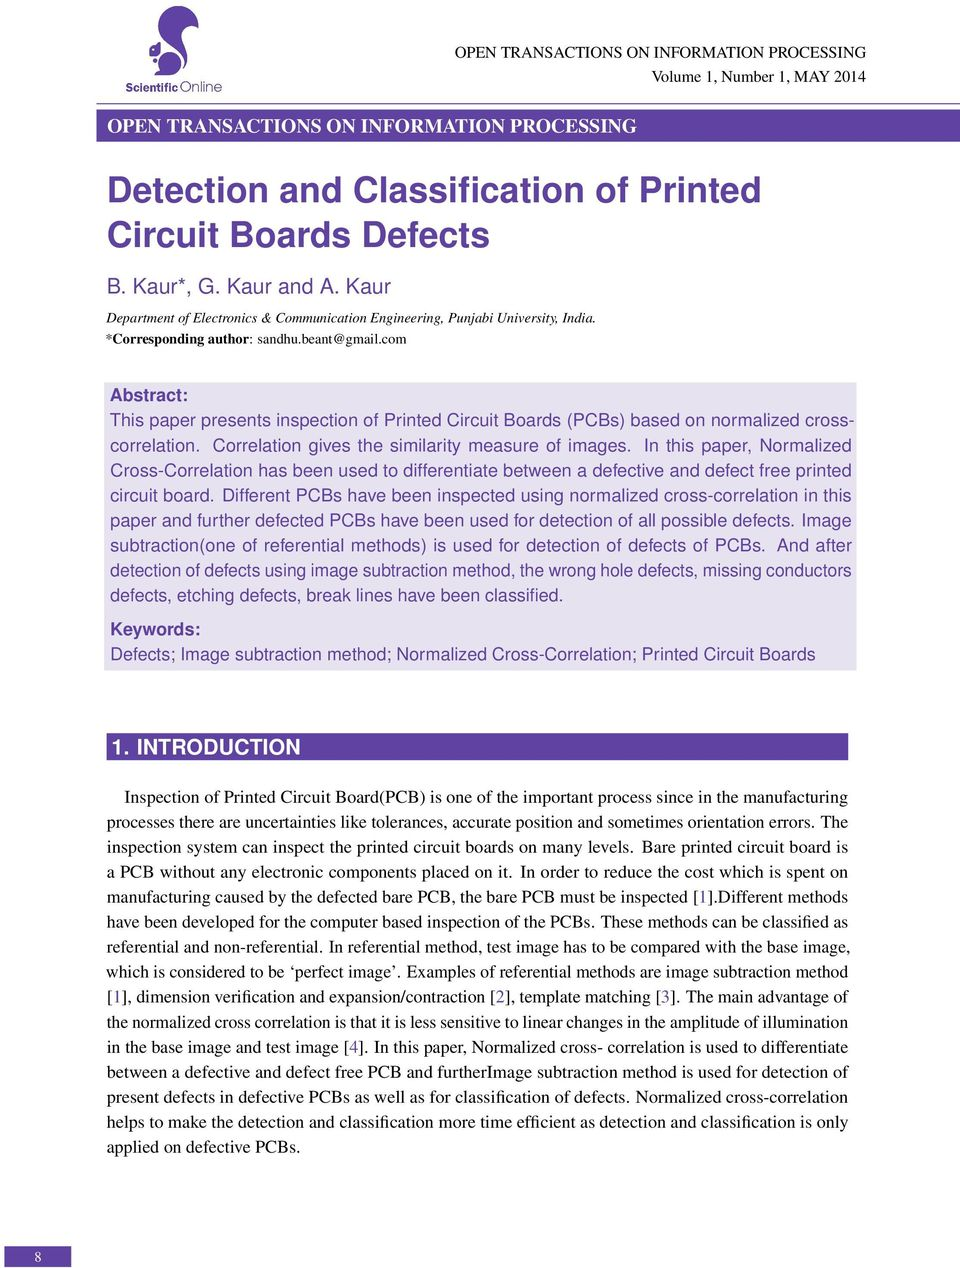 Detection and Classification of Printed Circuit Boards